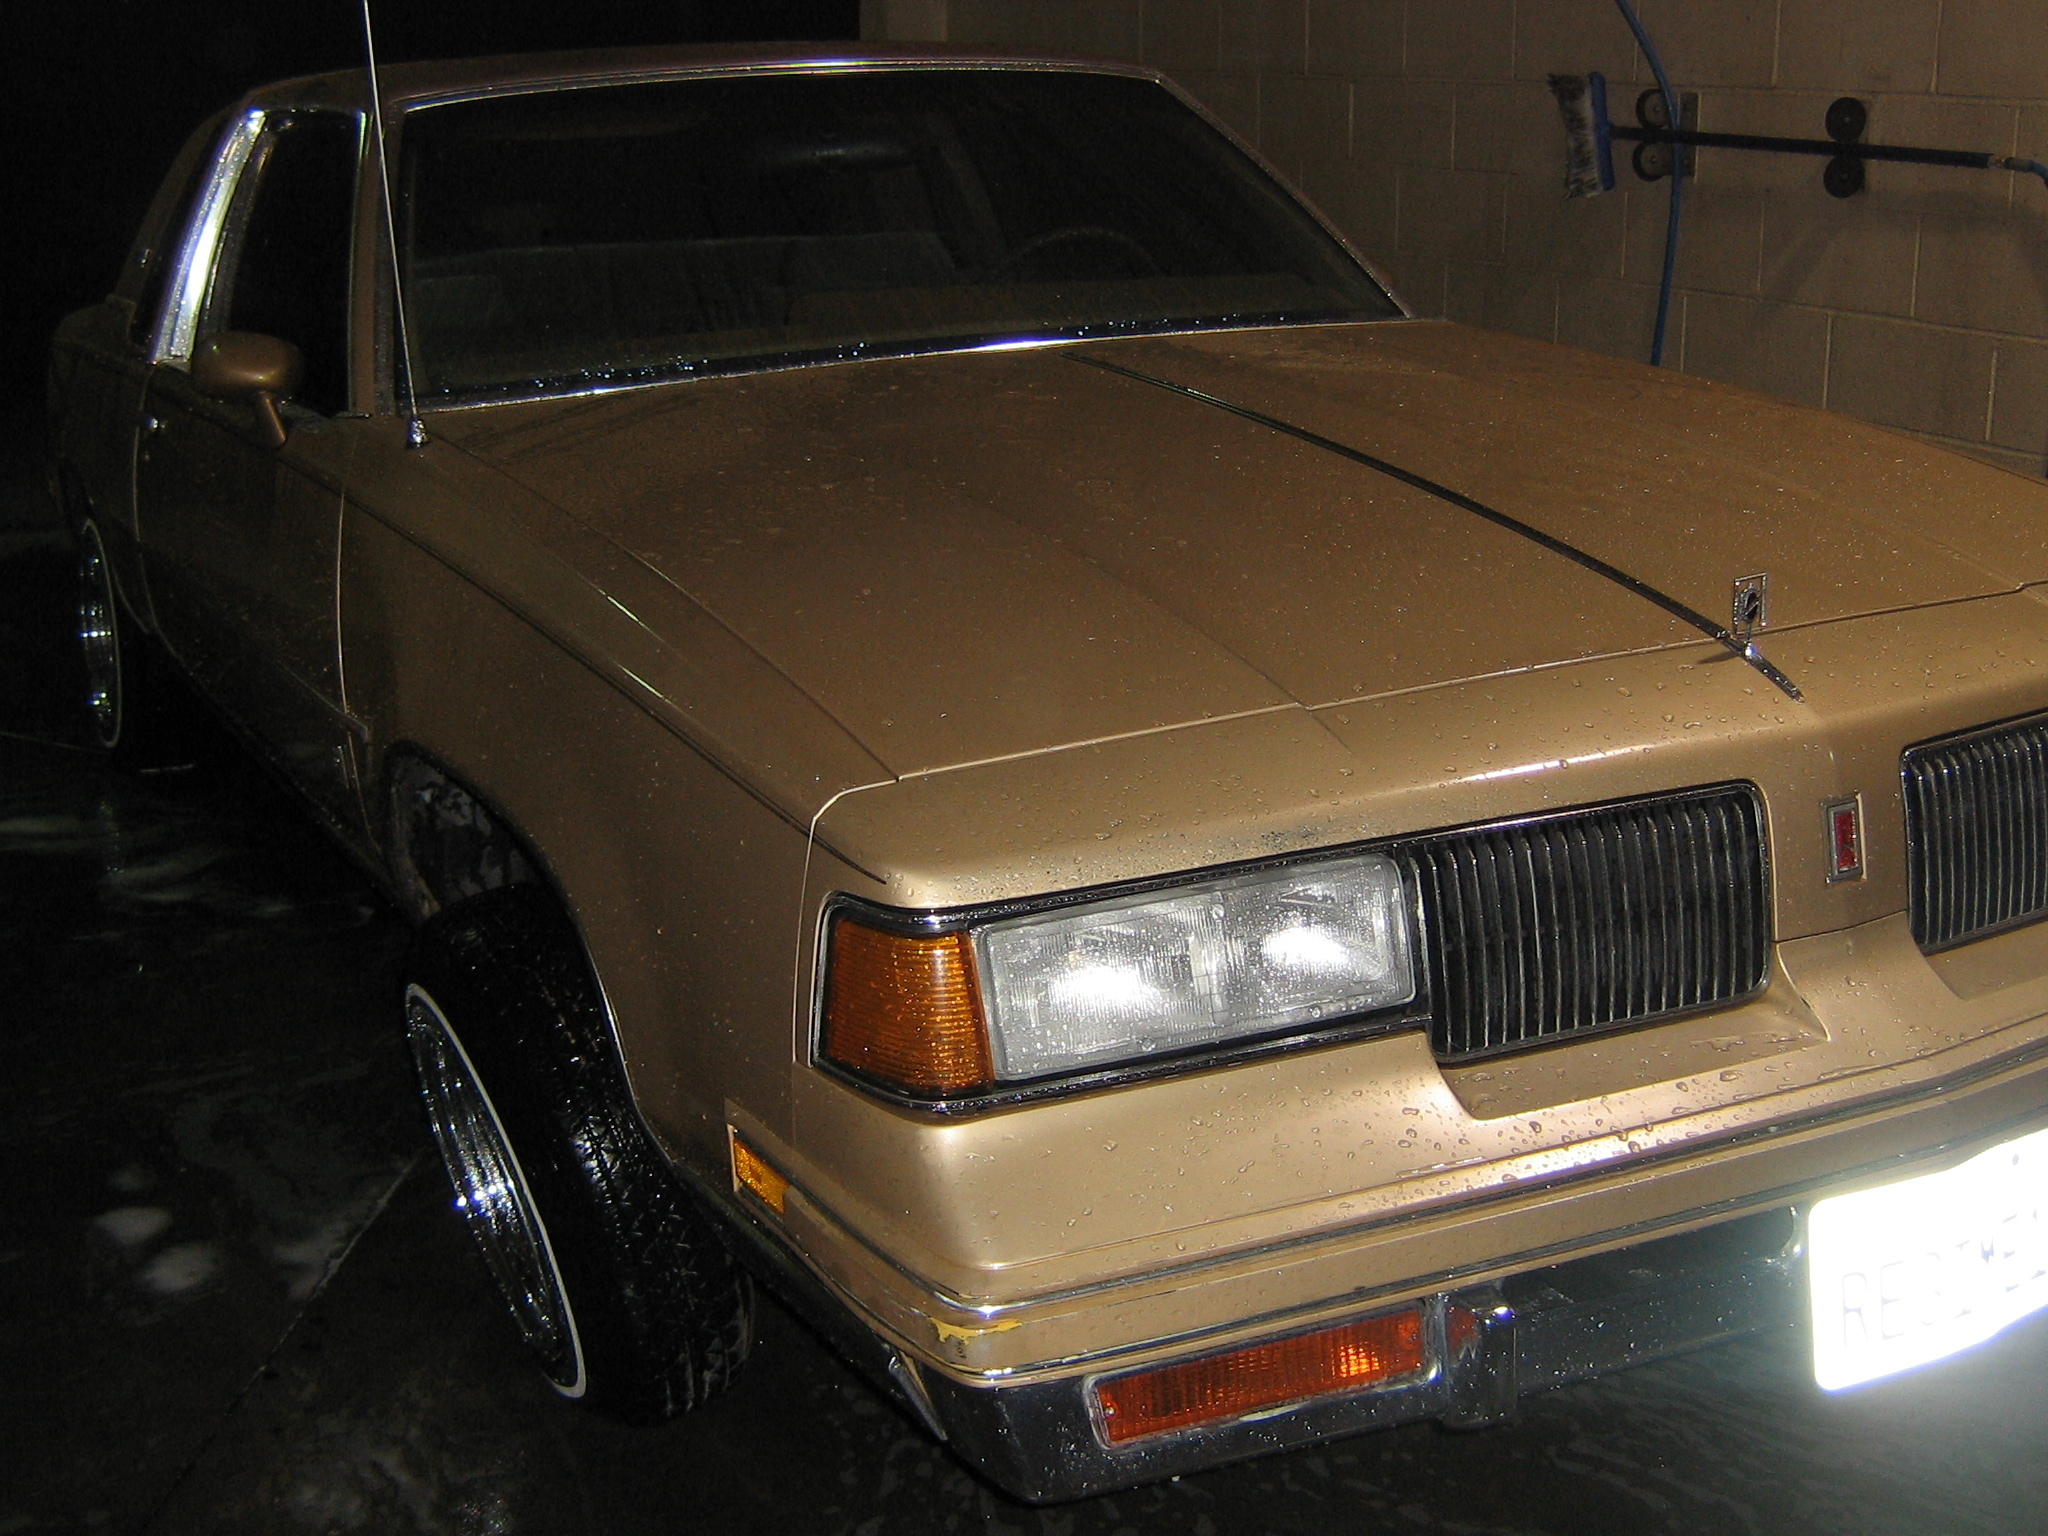 sp00kyi3 1987 Oldsmobile Cutlass Supreme 13289186